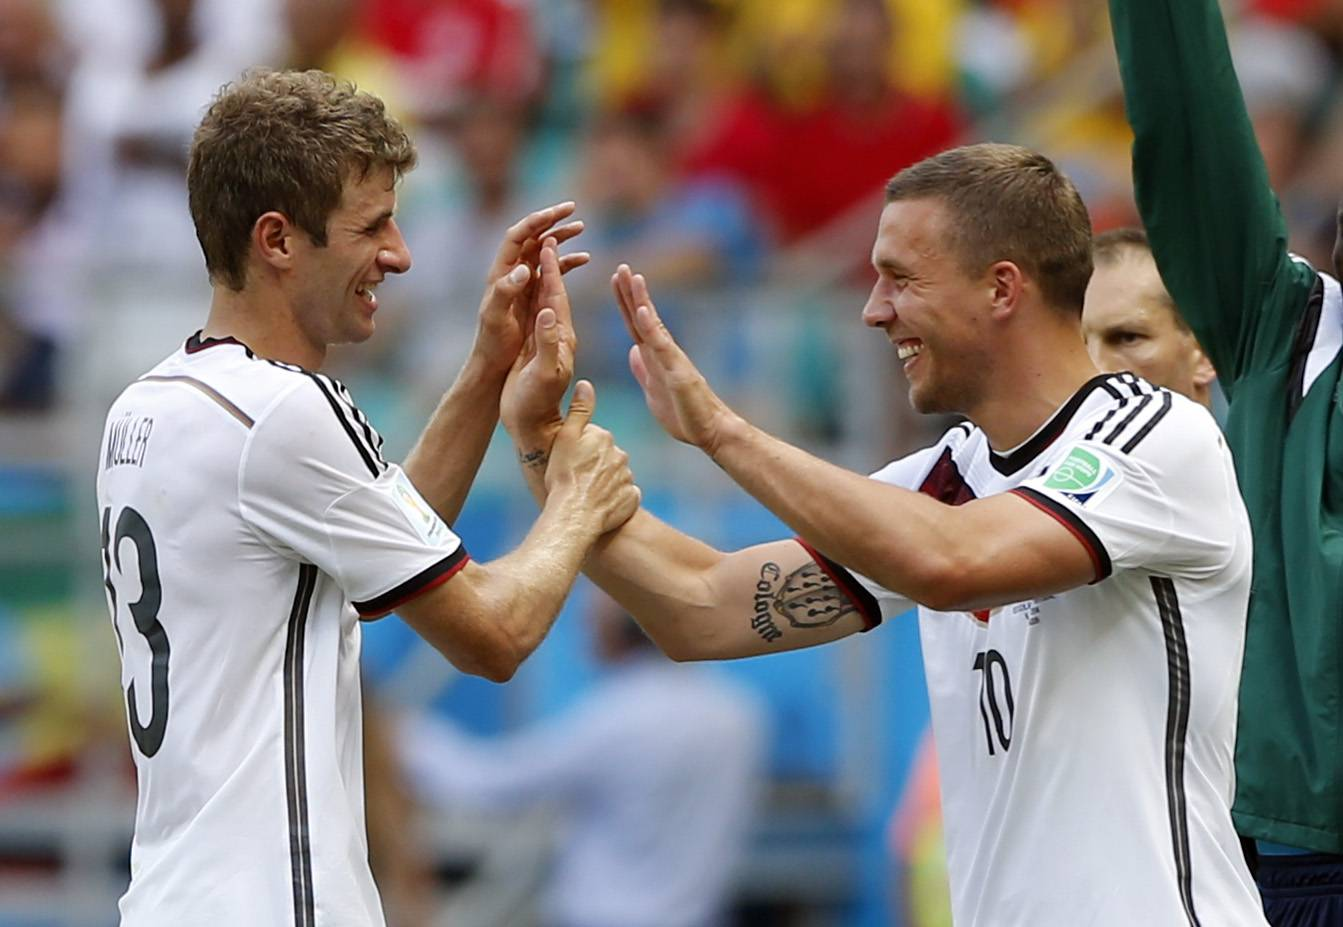 Germany's Thomas Mueller, left, is greeted by Lukas Podolski after being substituted after scoring a hat-trick during the World Cup soccer match between Germany and Portugal in Salvador, Brazil on Monday.